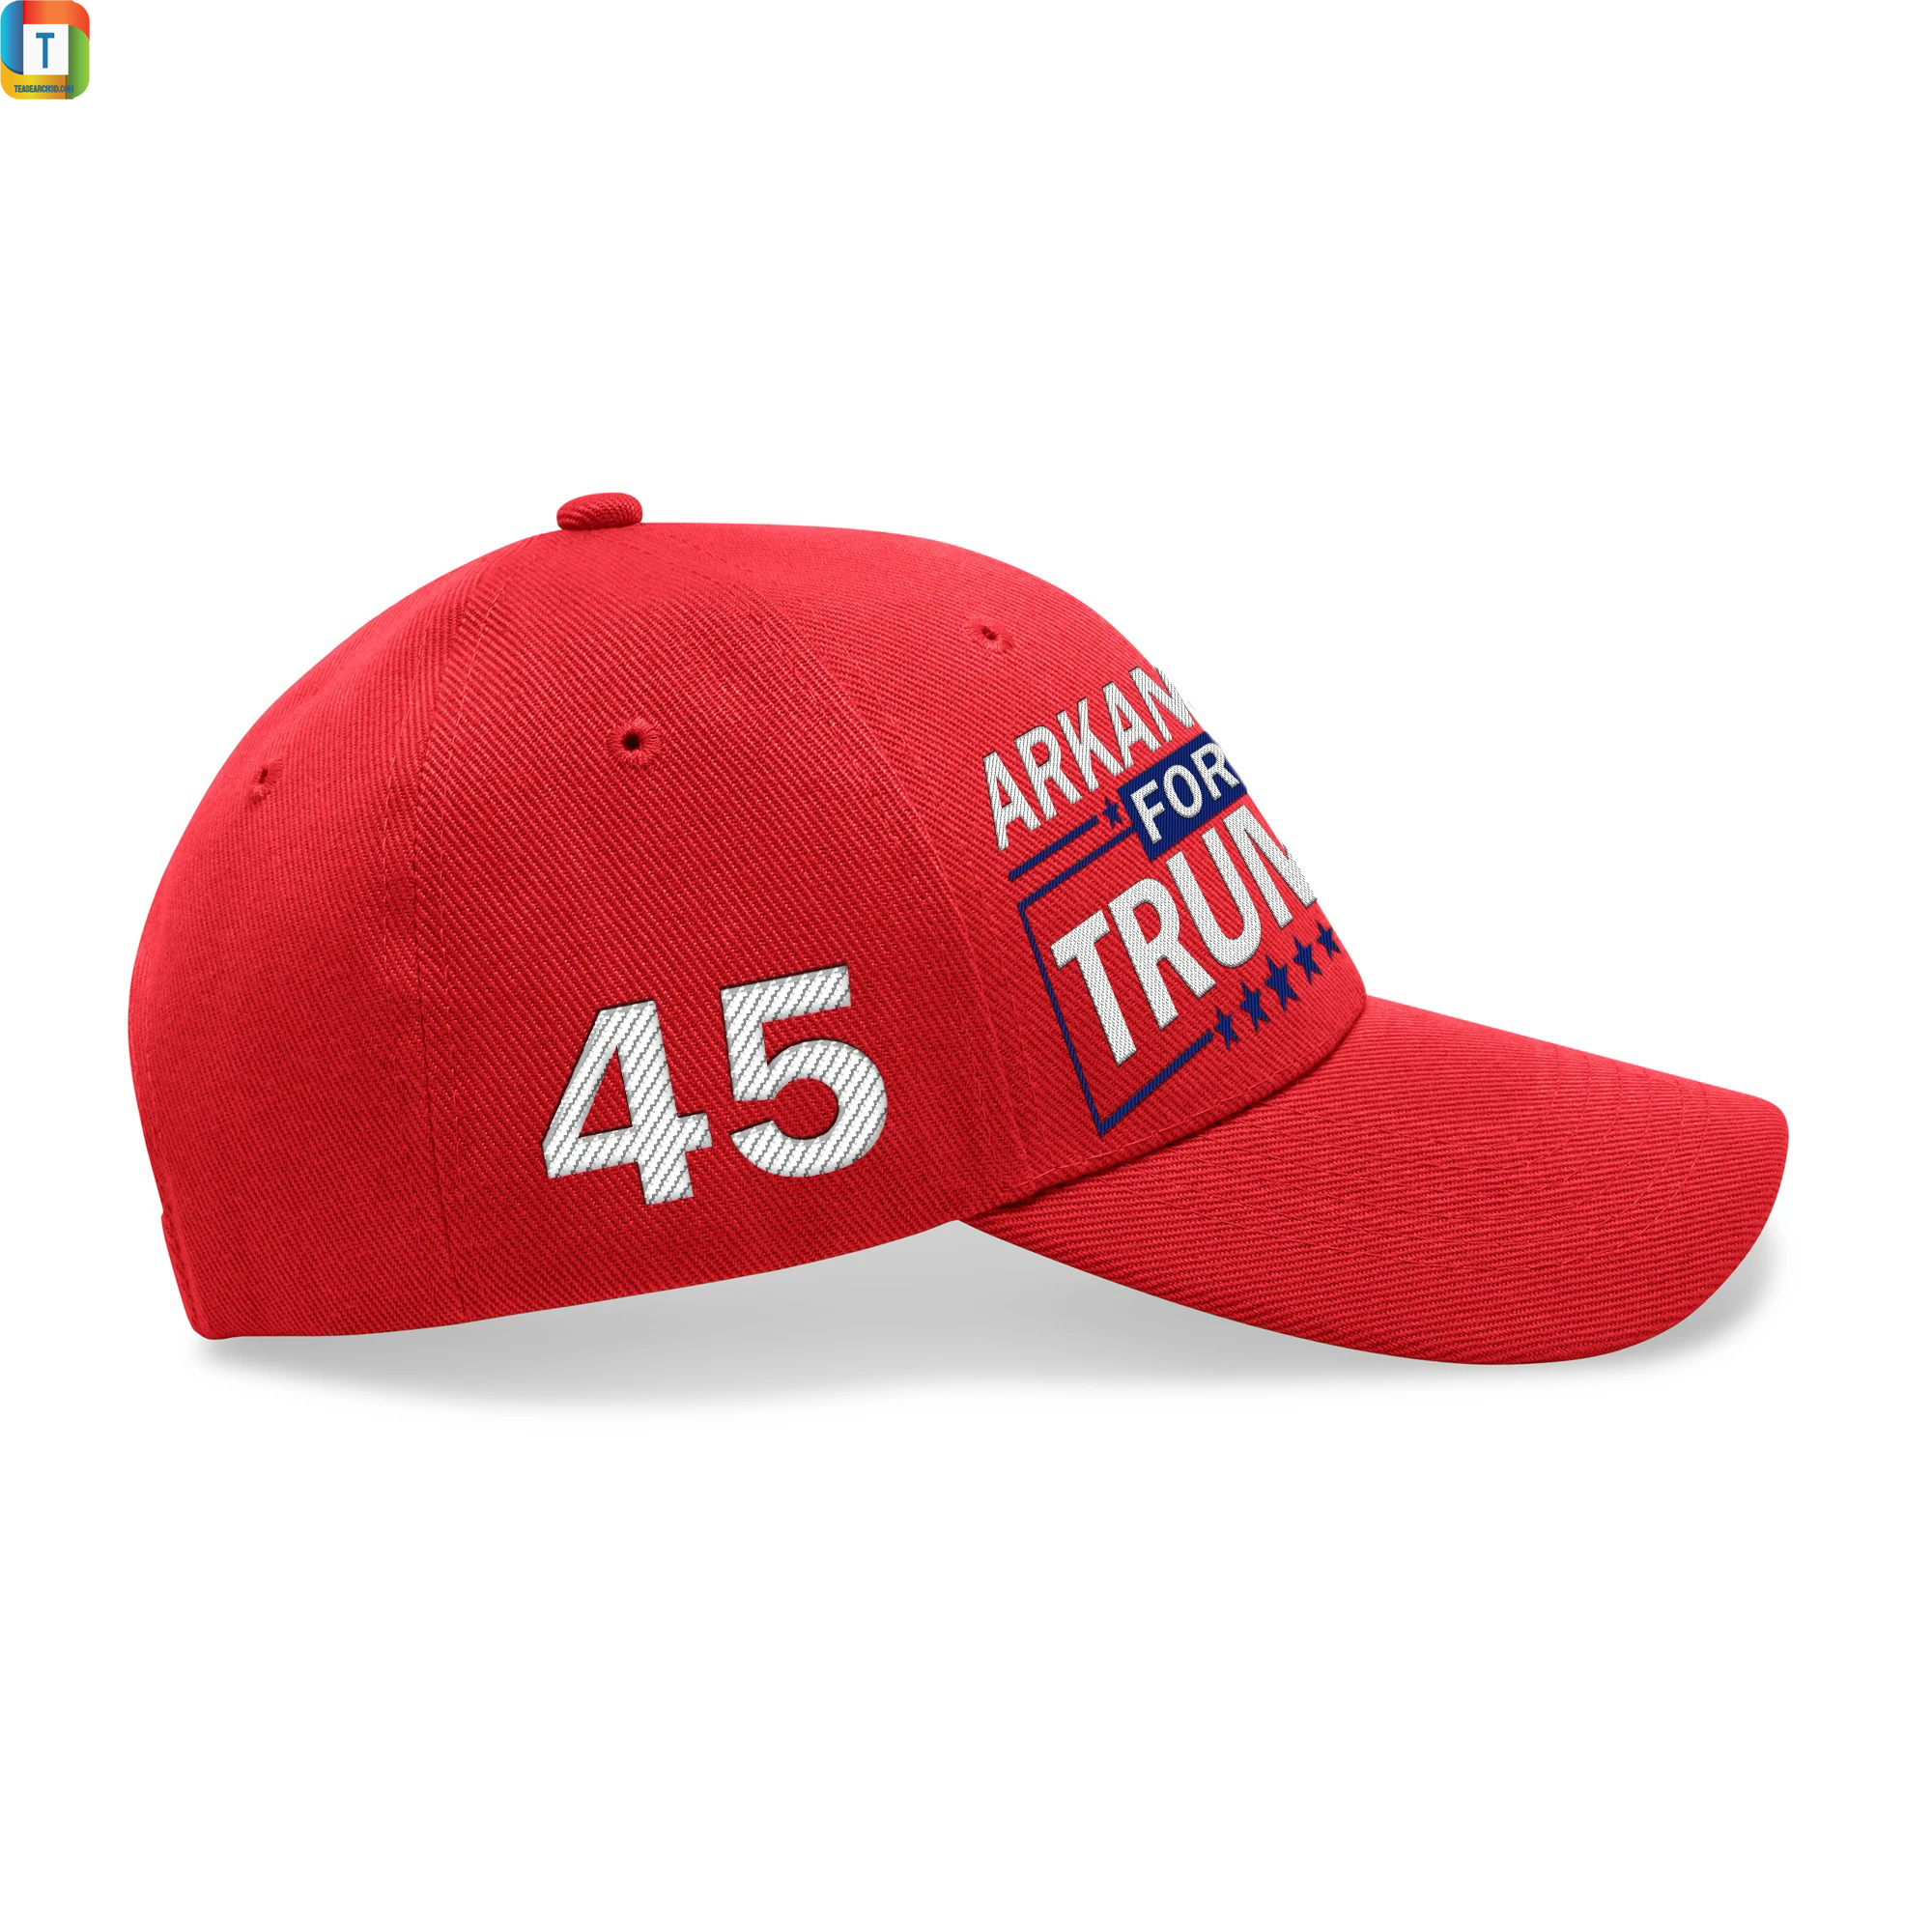 Arkansas For Trump Embroidered Hat 3